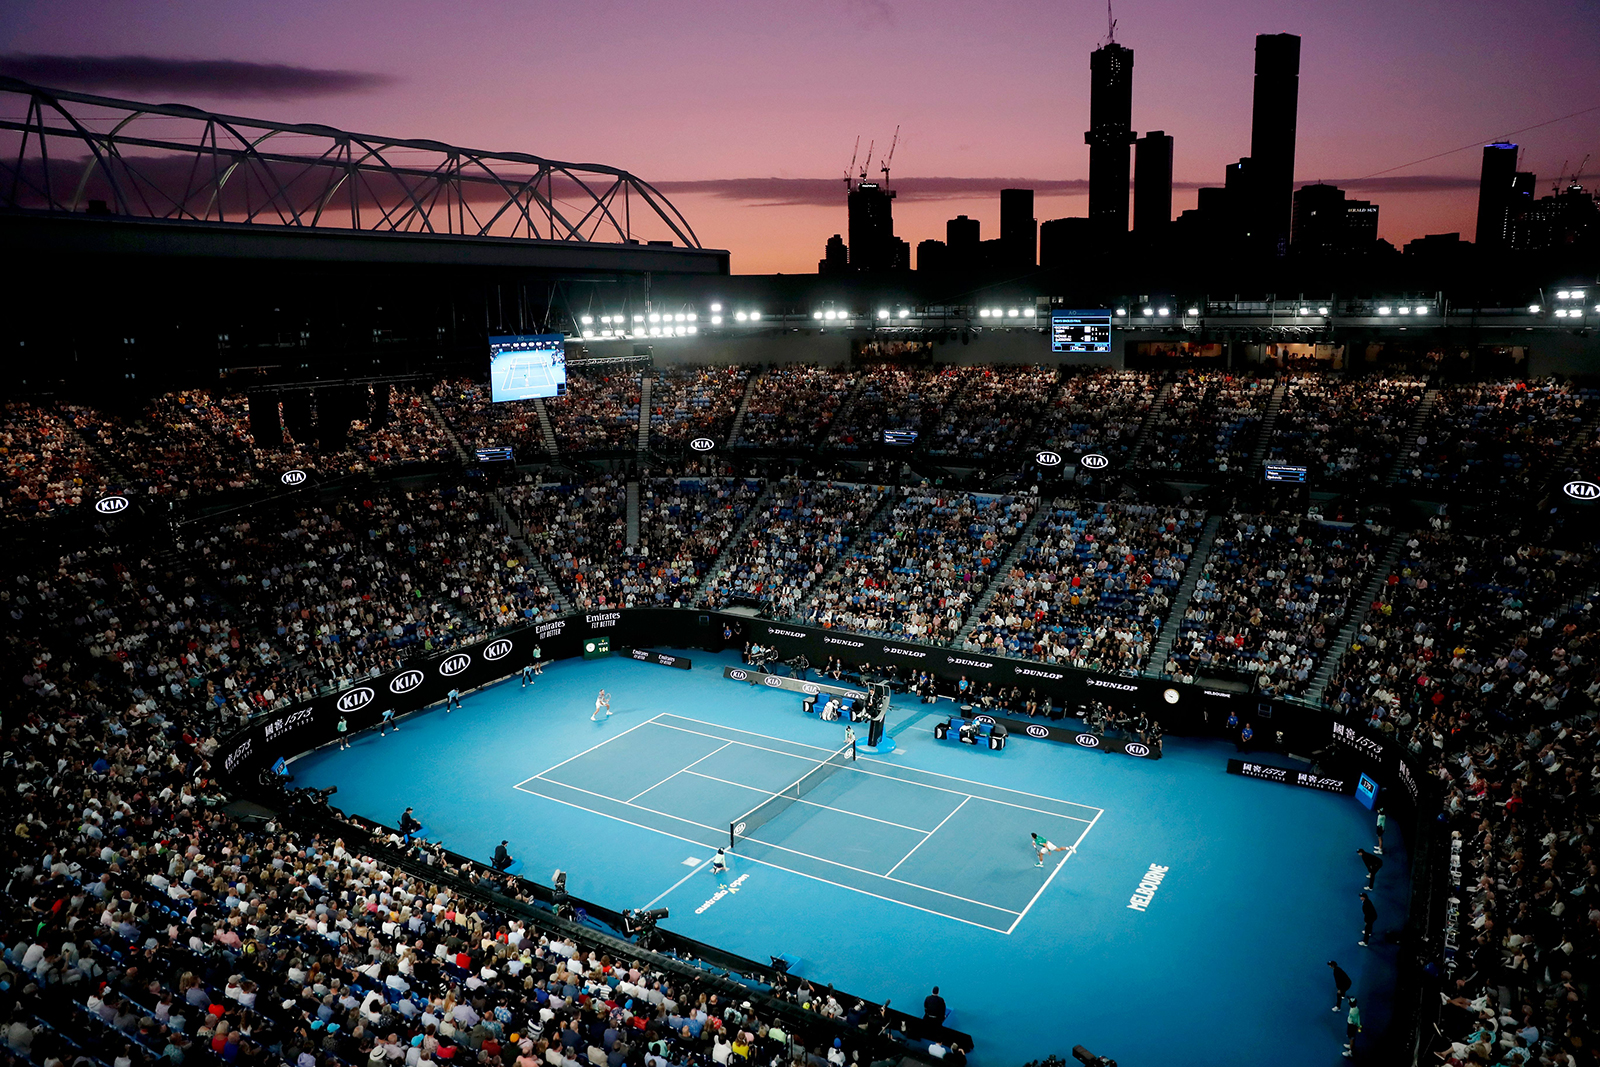 A general view of fans at Rod Laver Arena watching the men's singles final match between Novak Djokovic of Serbia and Dominic Thiem of Austria at the Australian Open Grand Slam tennis tournament in Melbourne, Australia, on February 2.